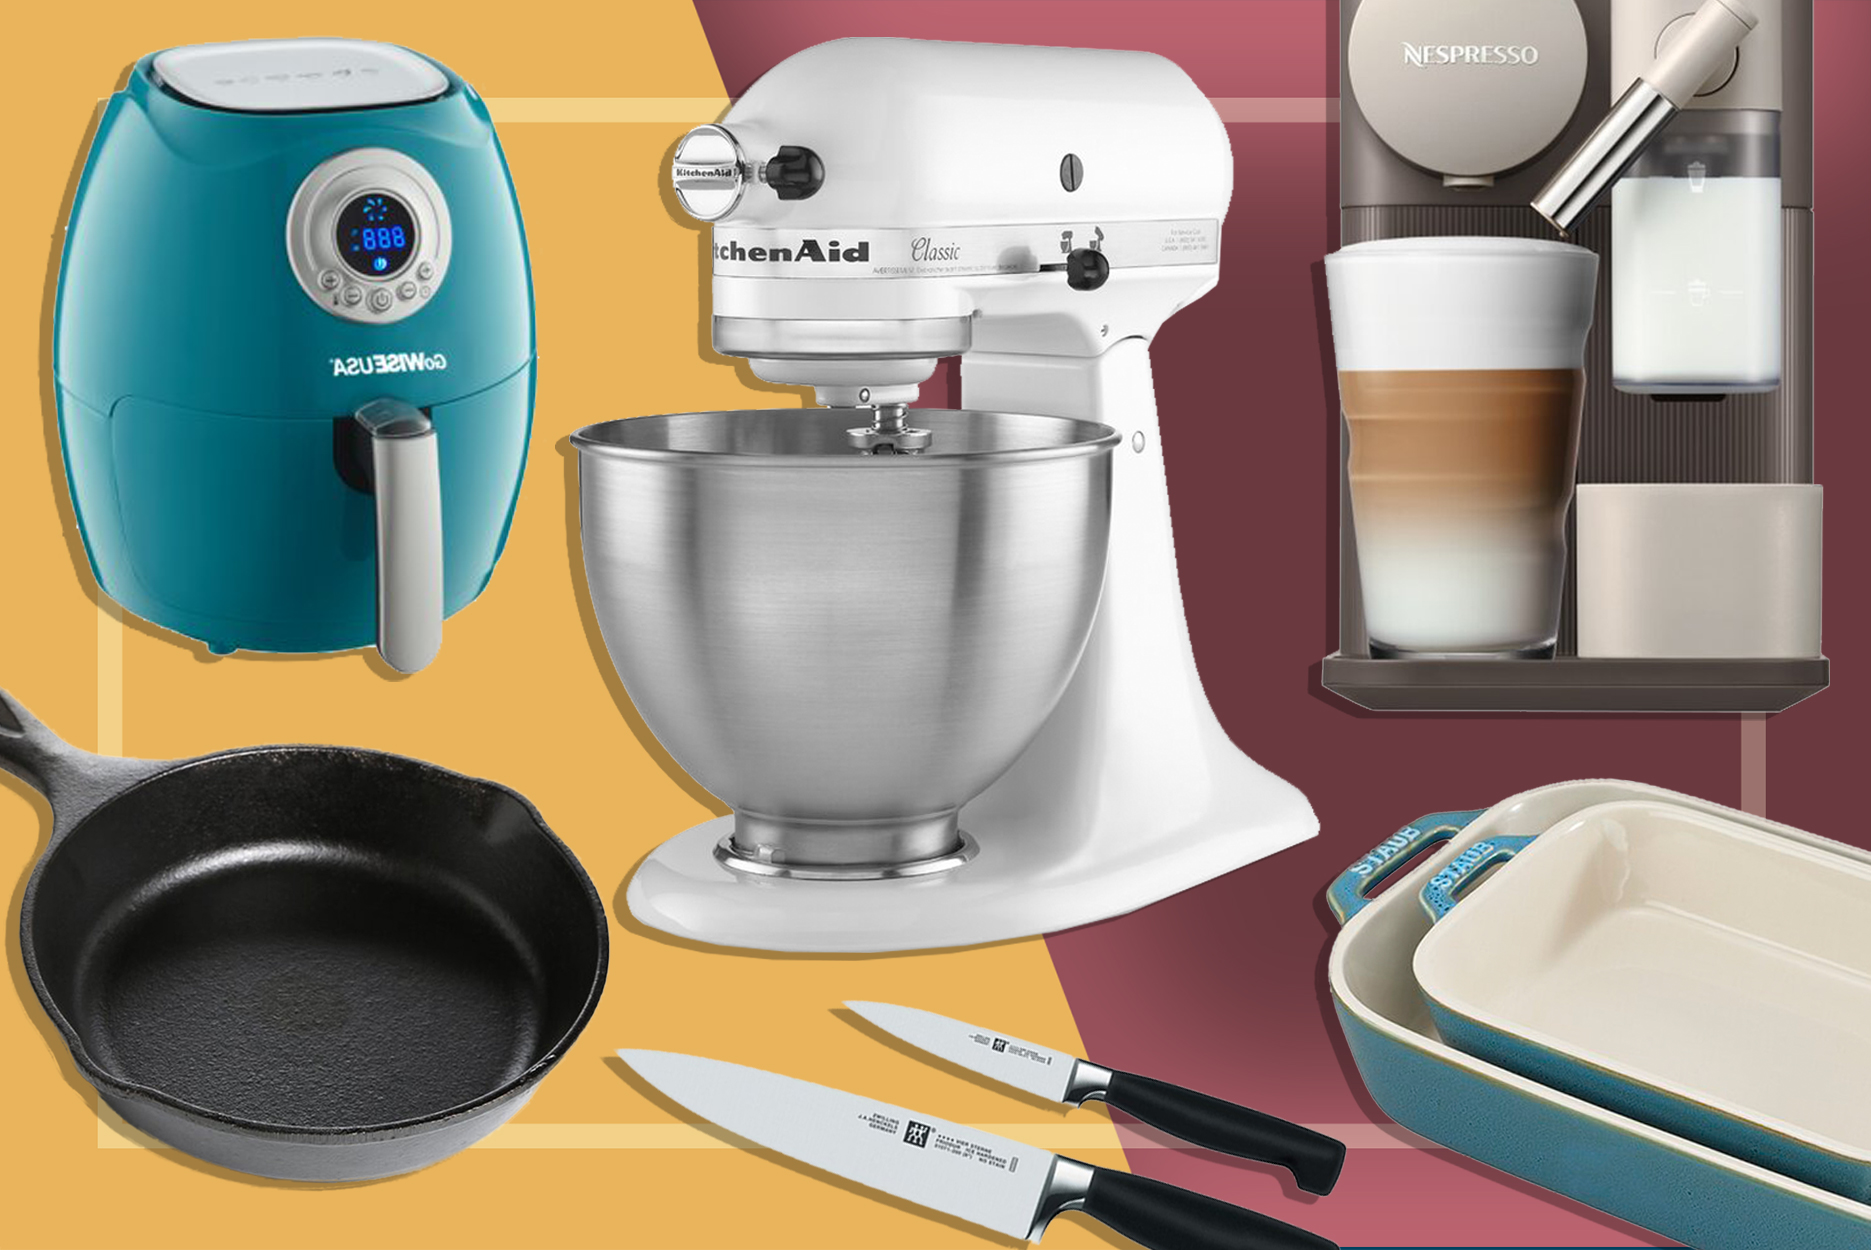 Le Creuset, KitchenAid, Cuisinart, and More Are Up to 75% Off at Wayfair Right Now